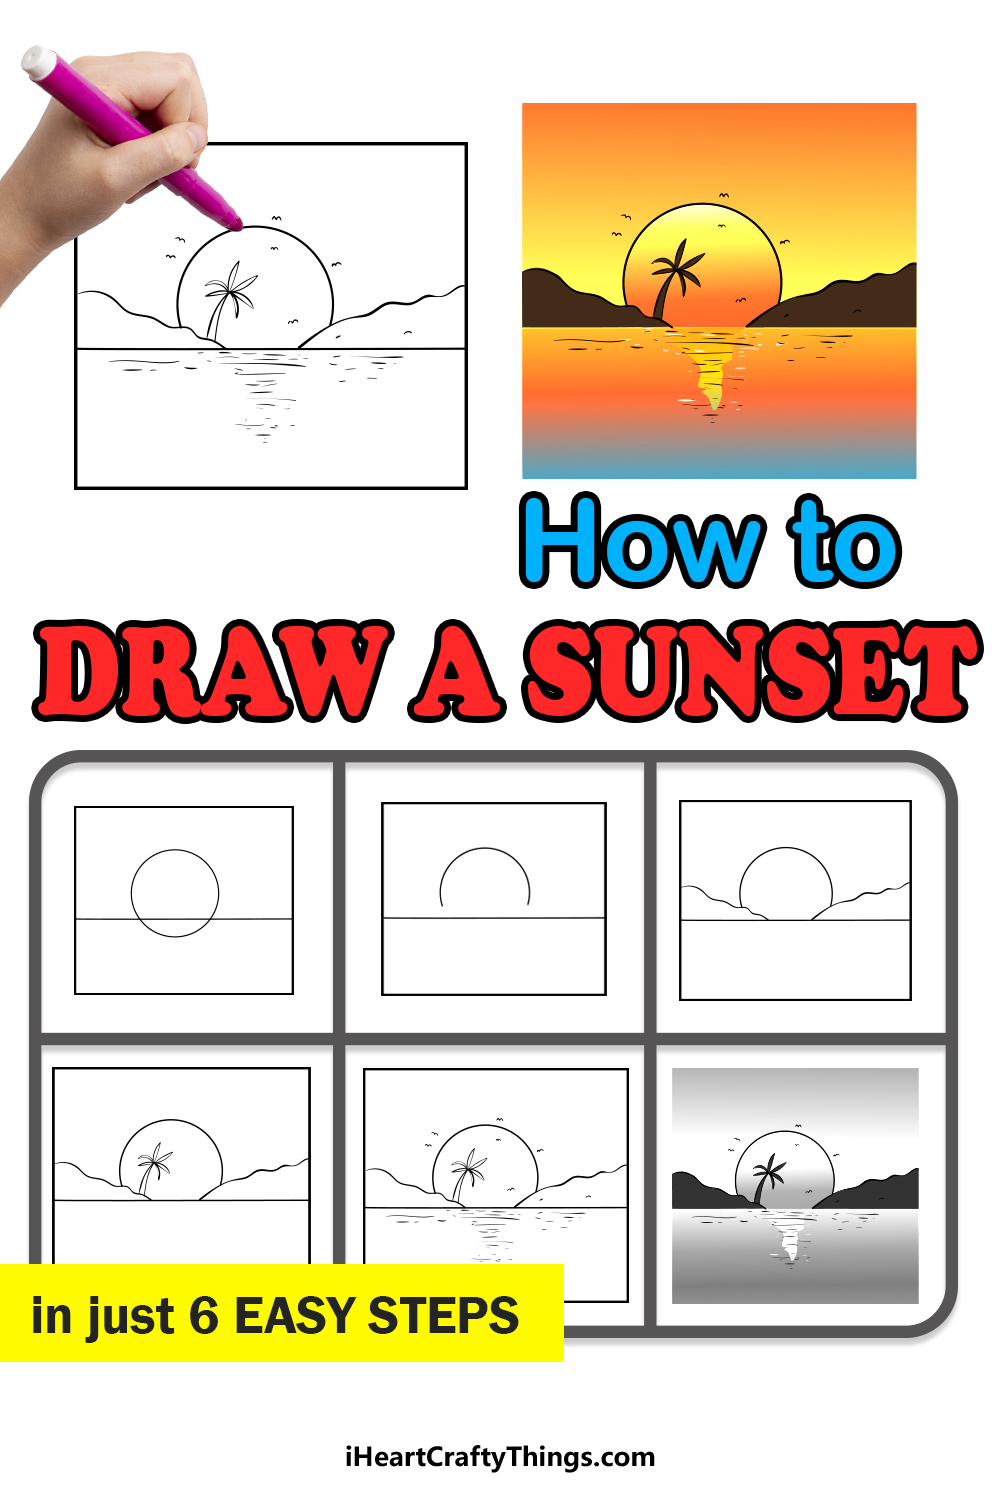 how to draw a sunset in 6 easy steps